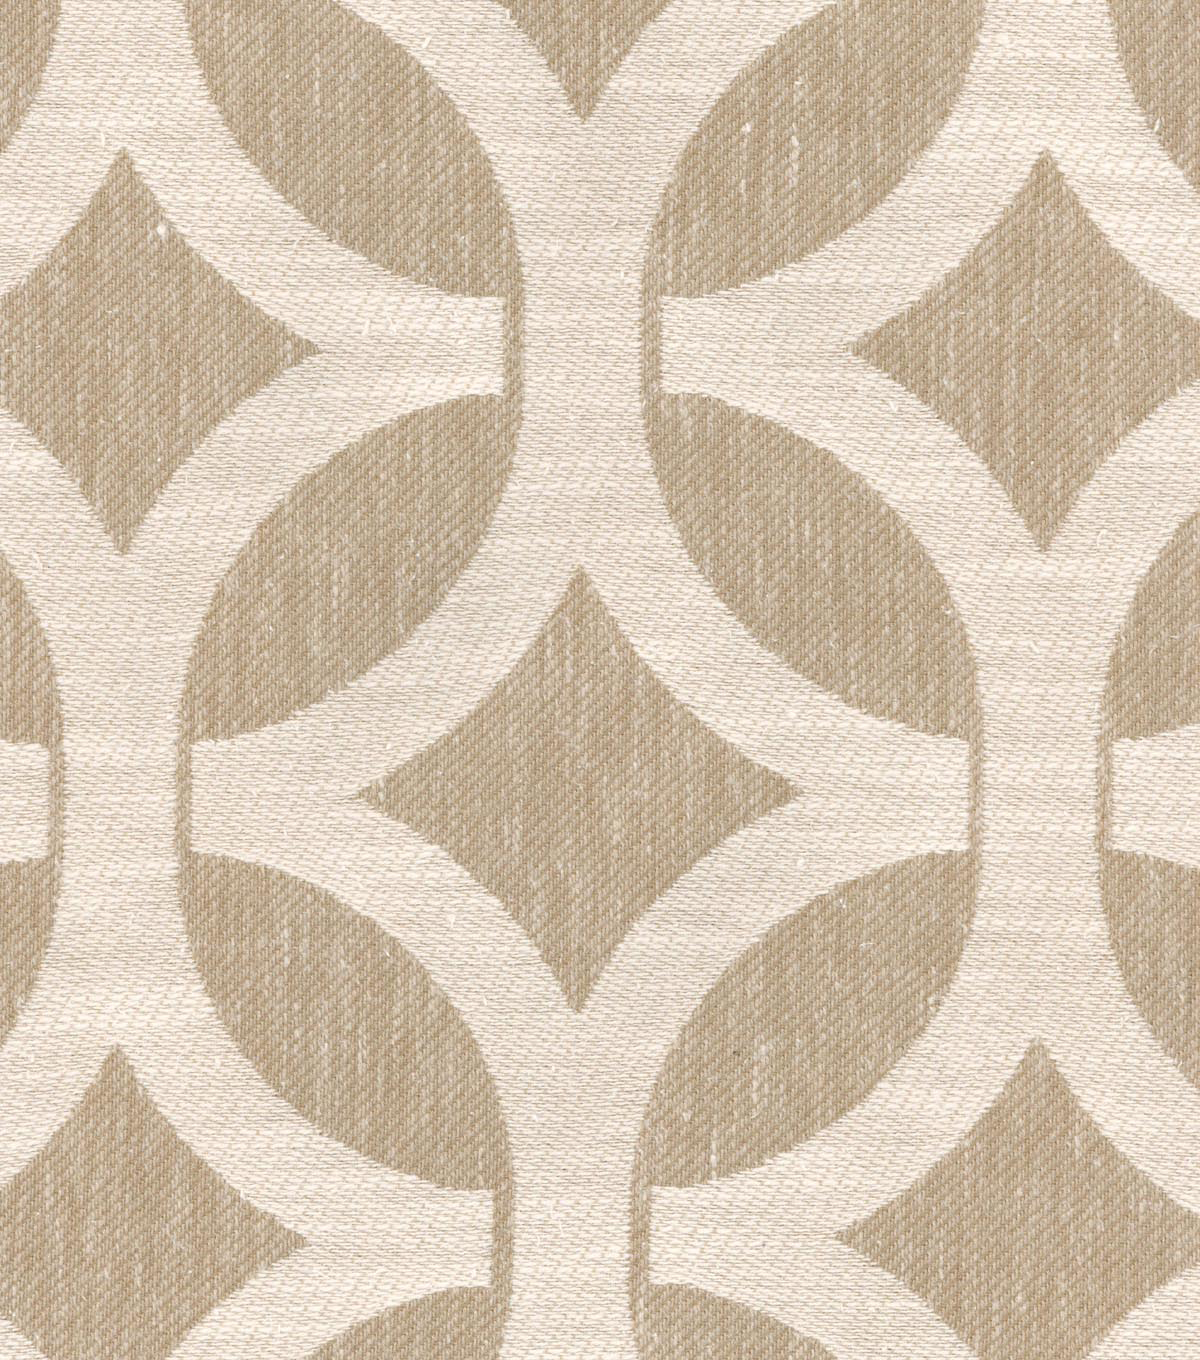 Home Decor 8\u0022x8\u0022 Swatch Fabric-Waverly Ludlow Lattice Stone